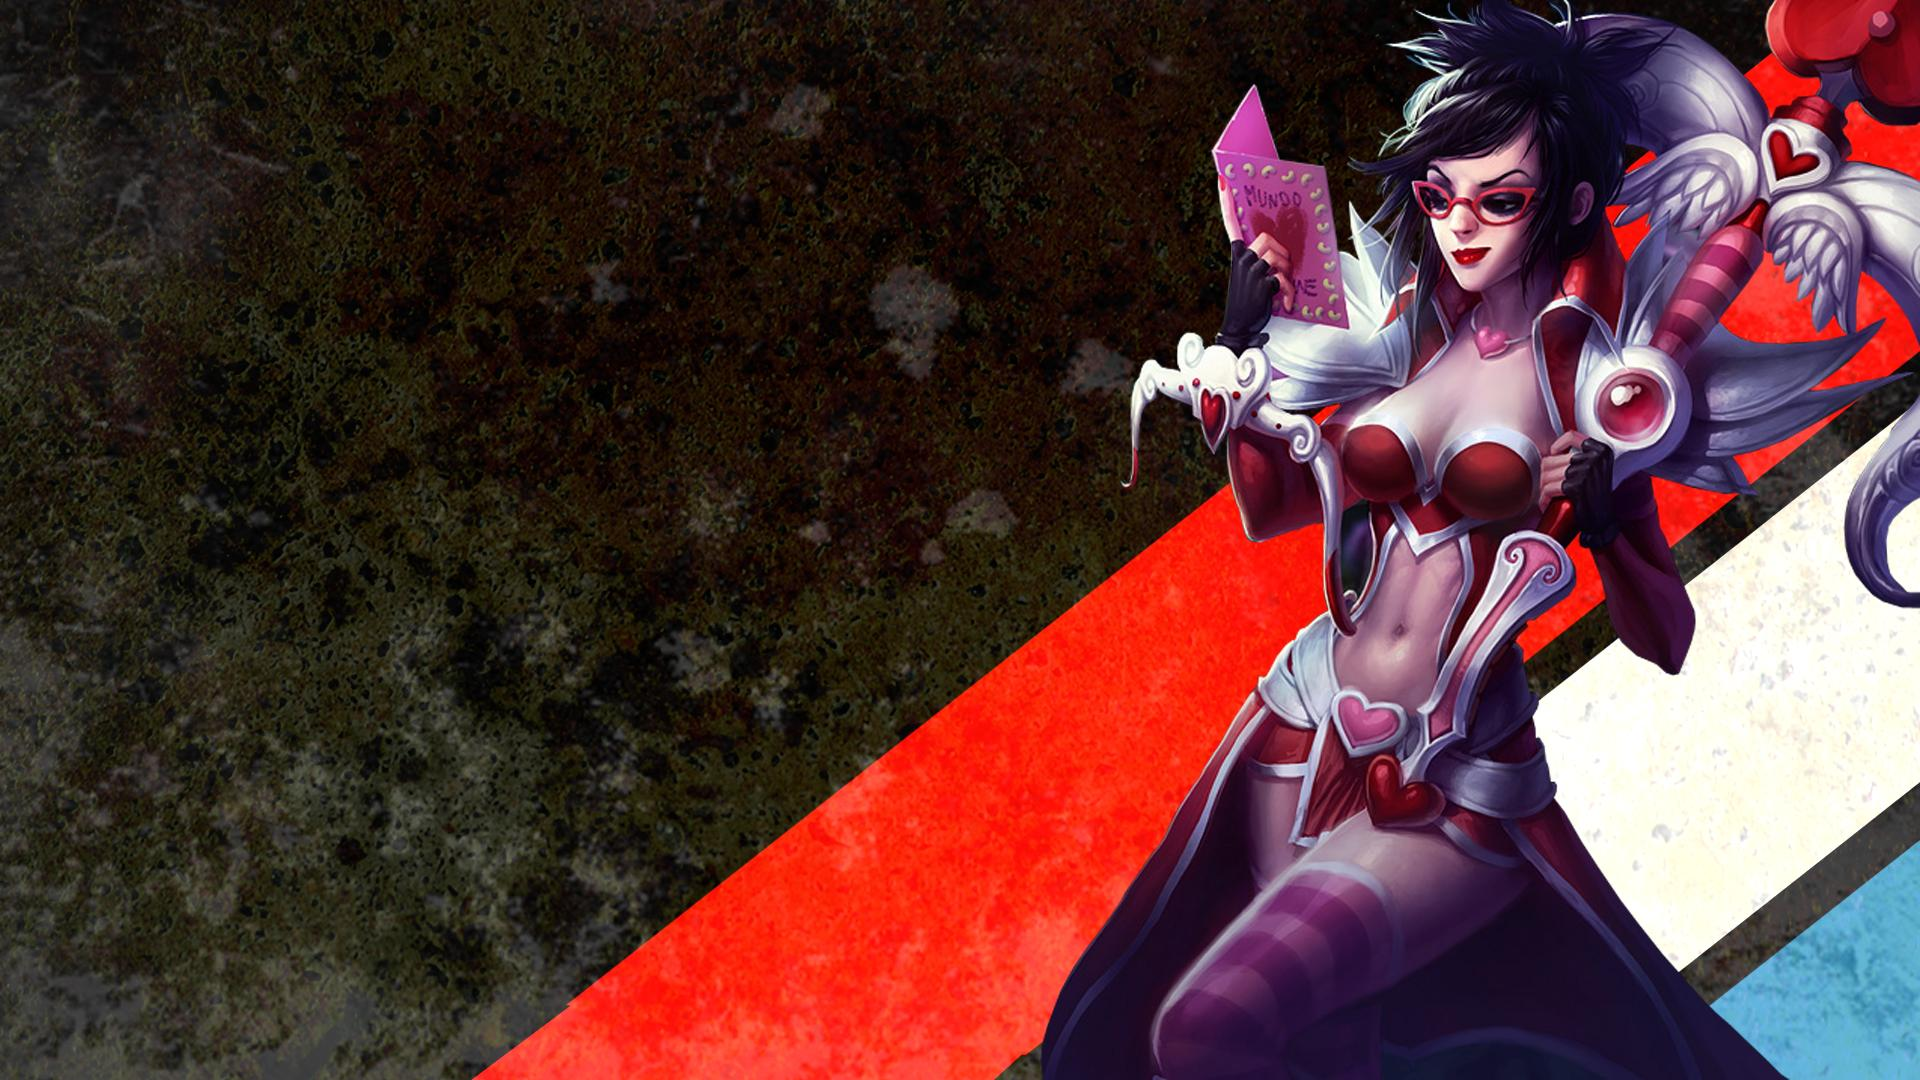 MLG Stripe Vayne wallpaper